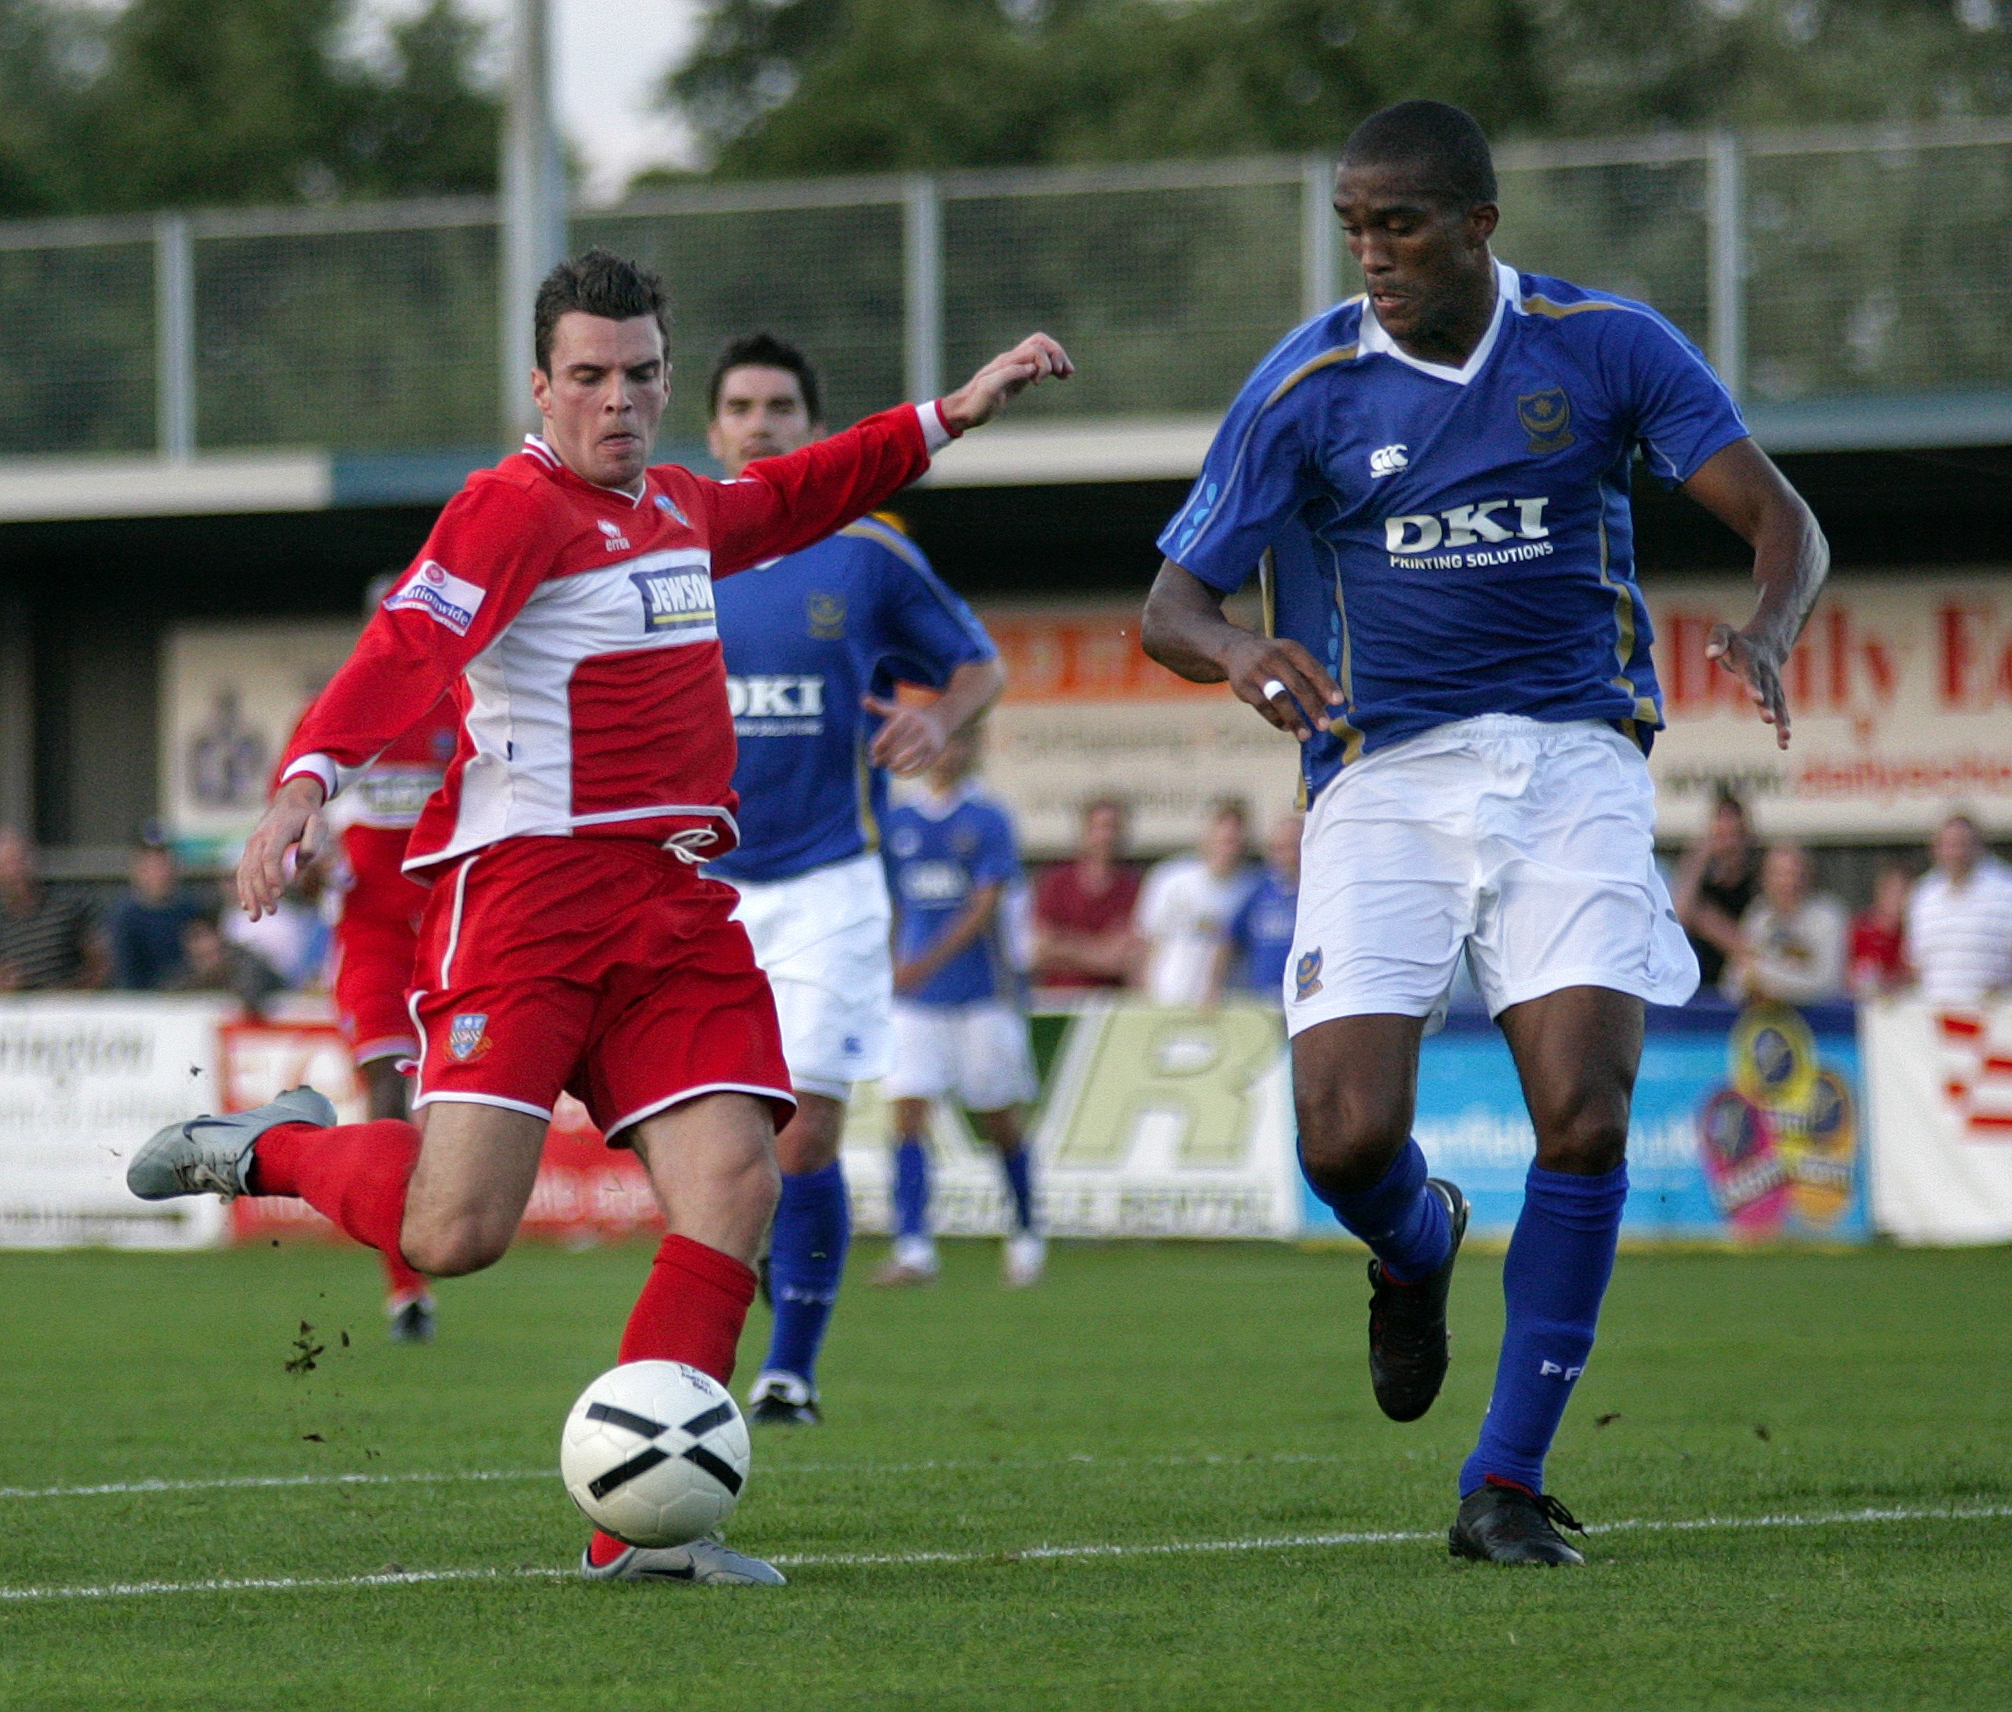 Eastleigh v Pompey in a friendly in 2007